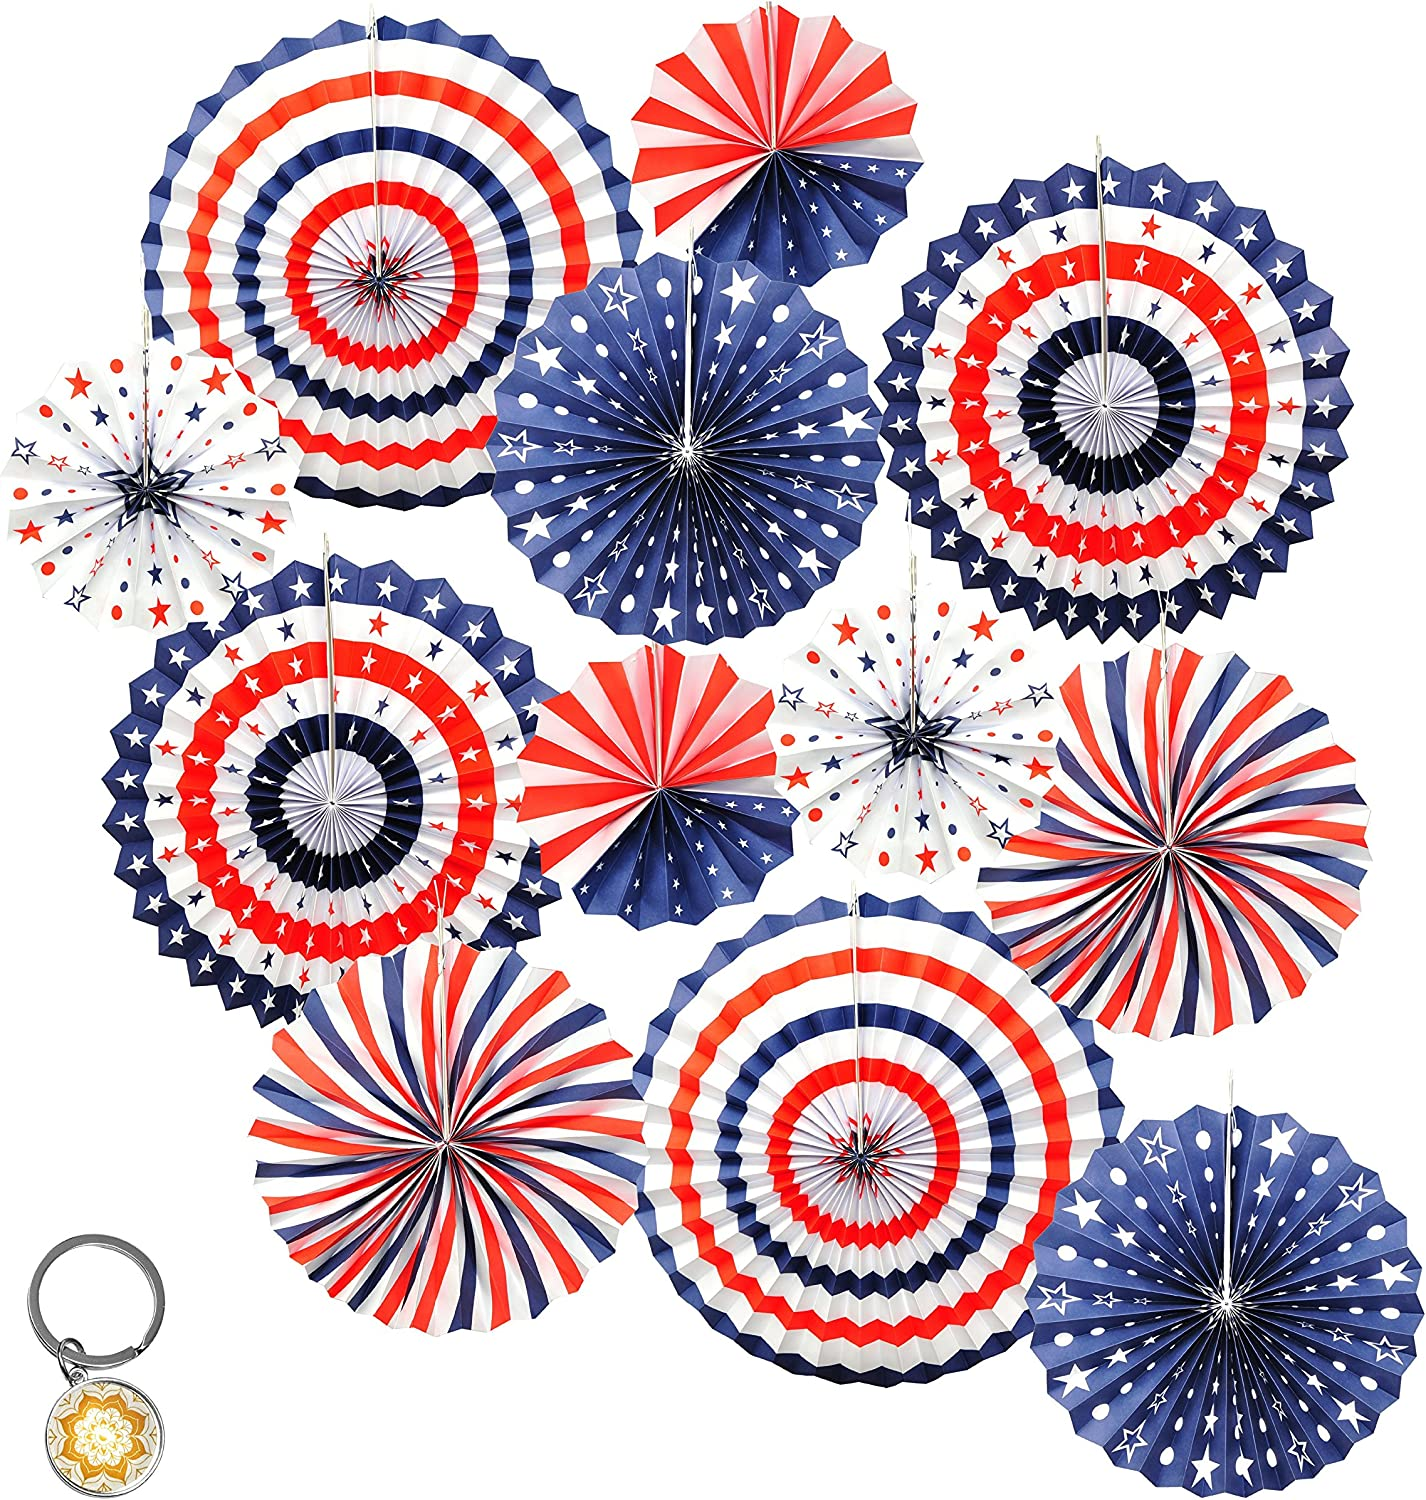 Mandala Crafts Patriotic Red White and Blue Decoration American Flag Paper Fan Set for 4th of July, Independence Day, USA Holiday, Election, Political Party